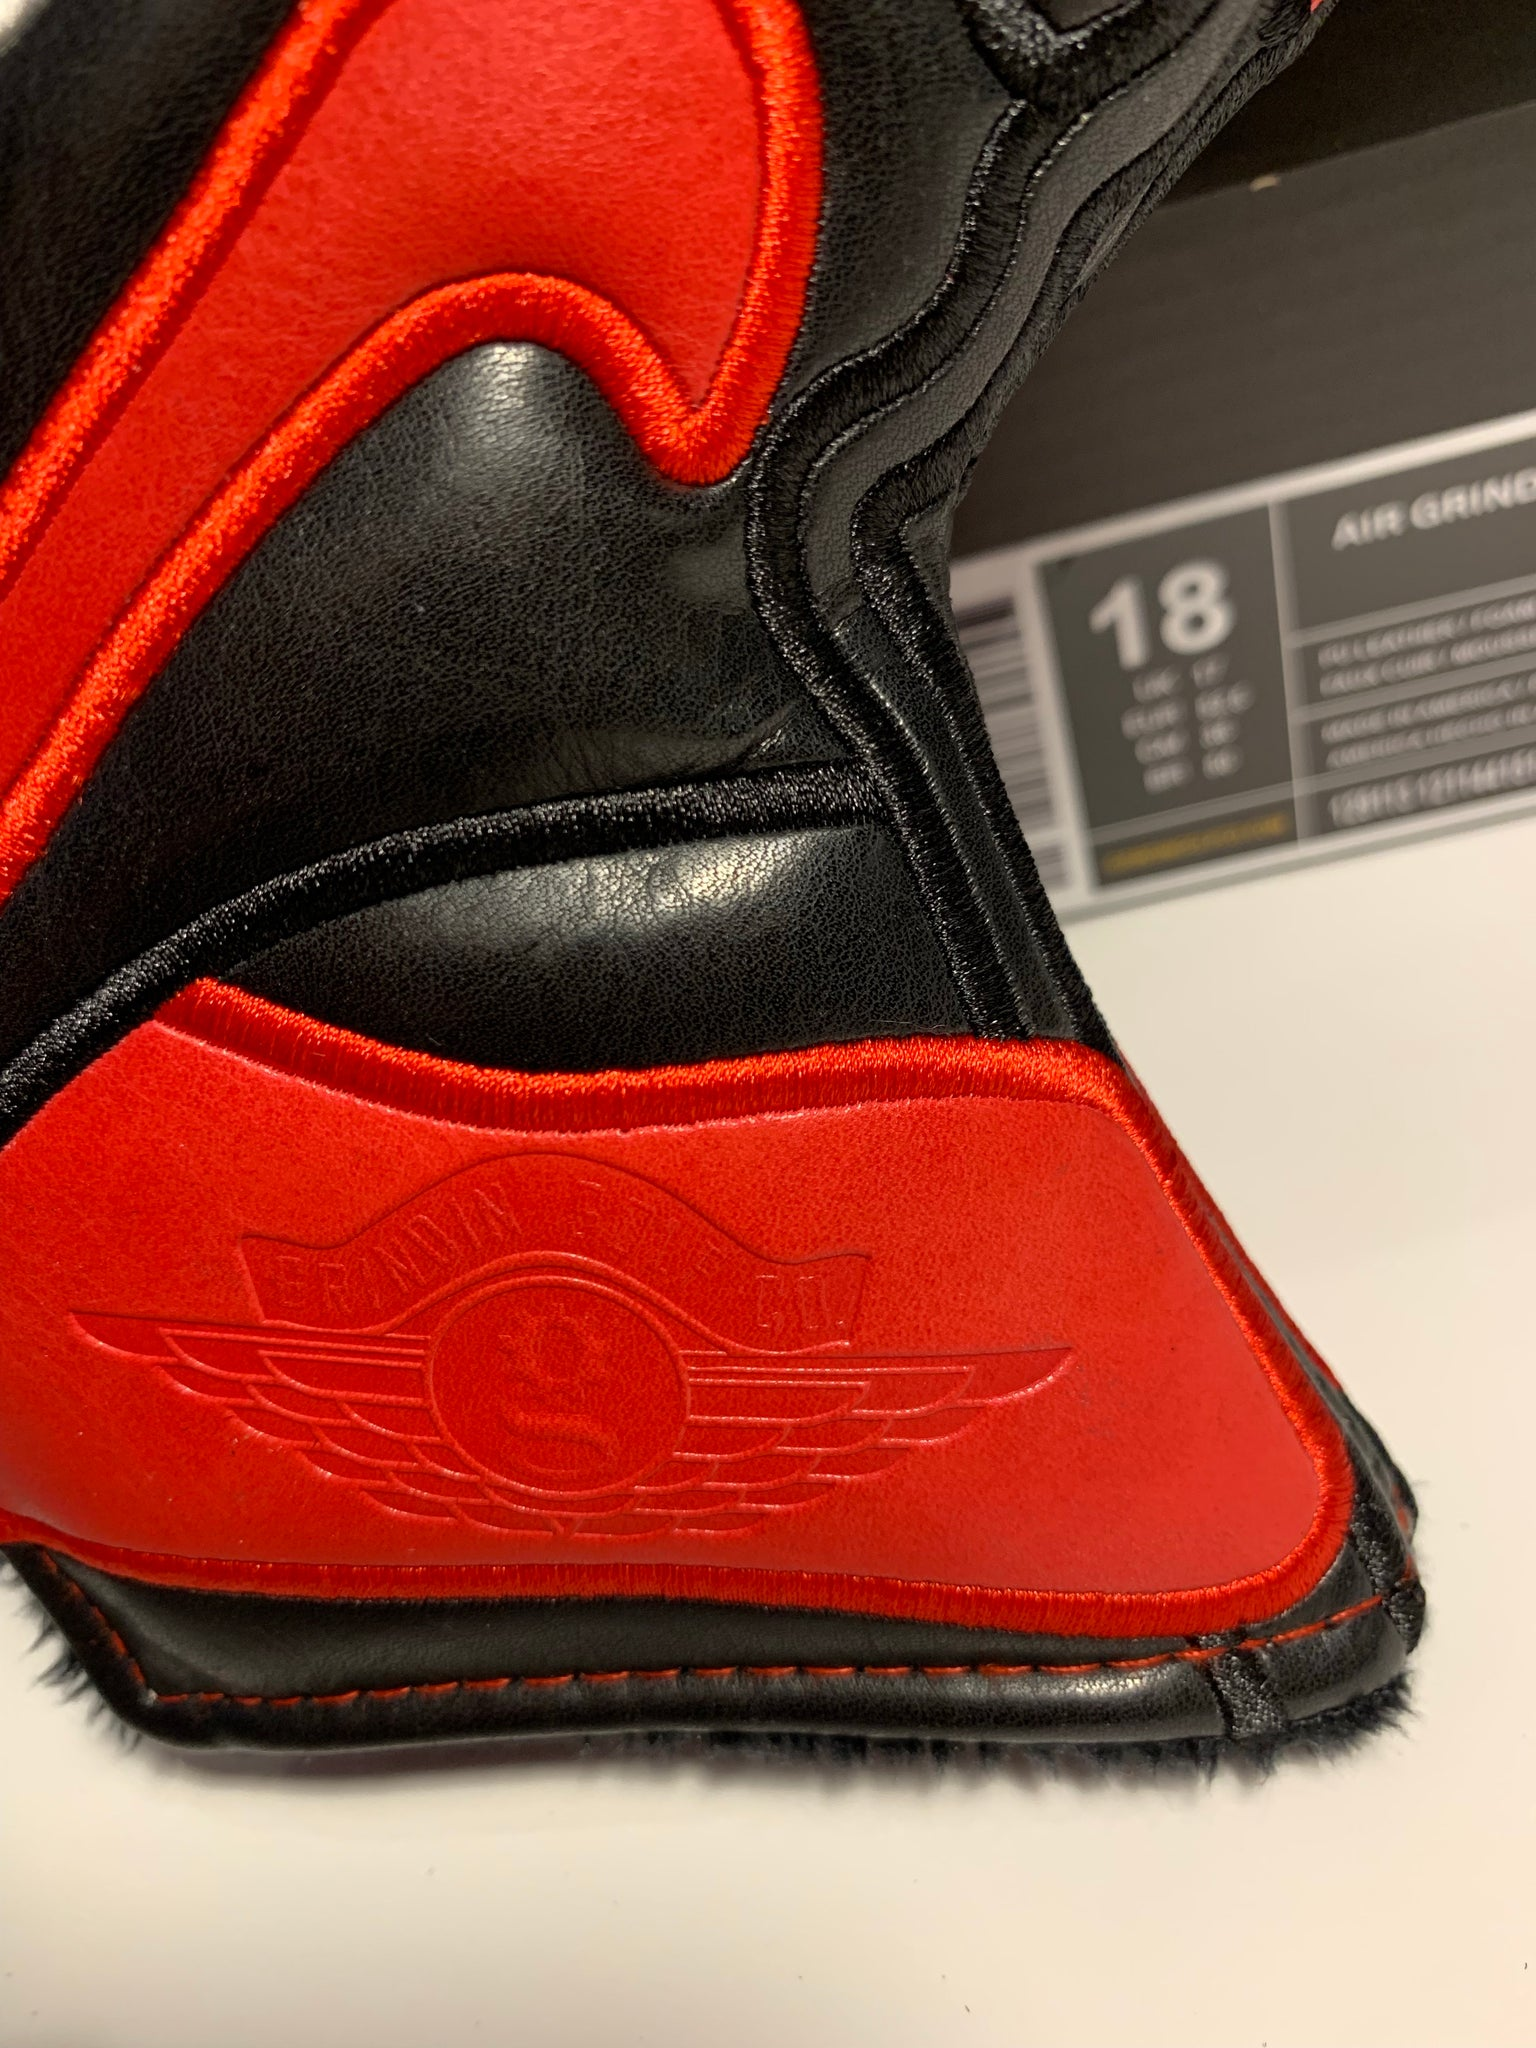 AJ 1 Blade Putter Cover - Black/Red